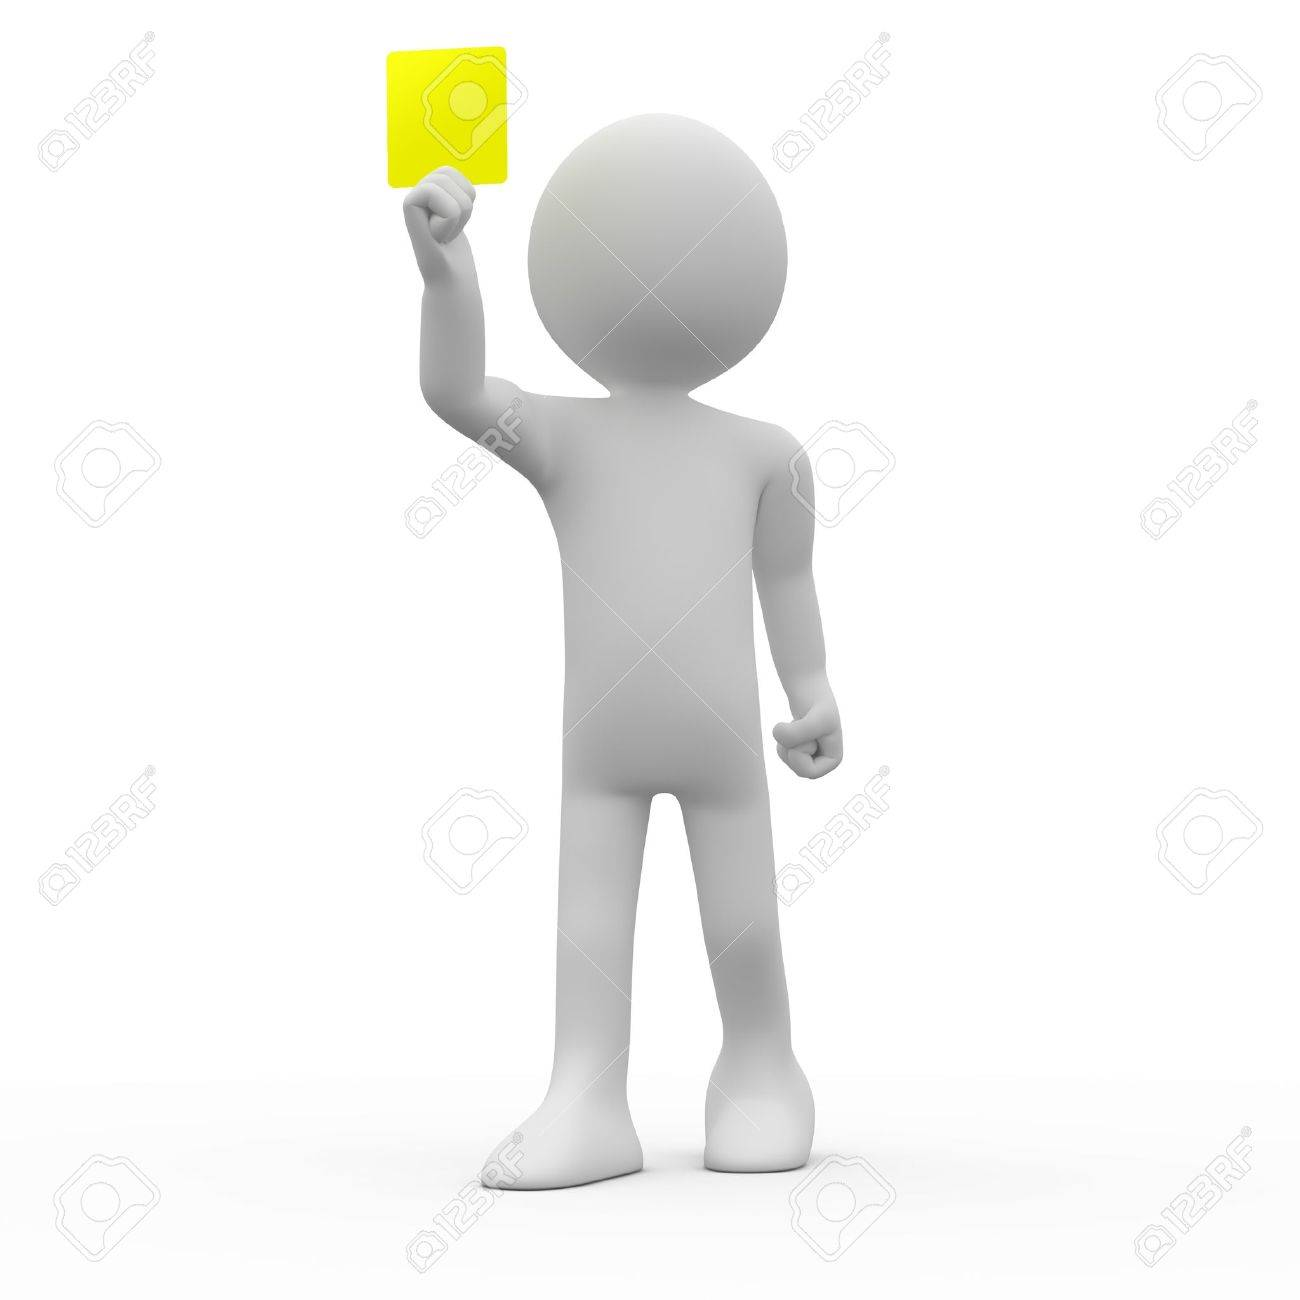 Referee showing yellow card Stock Photo - 9417746